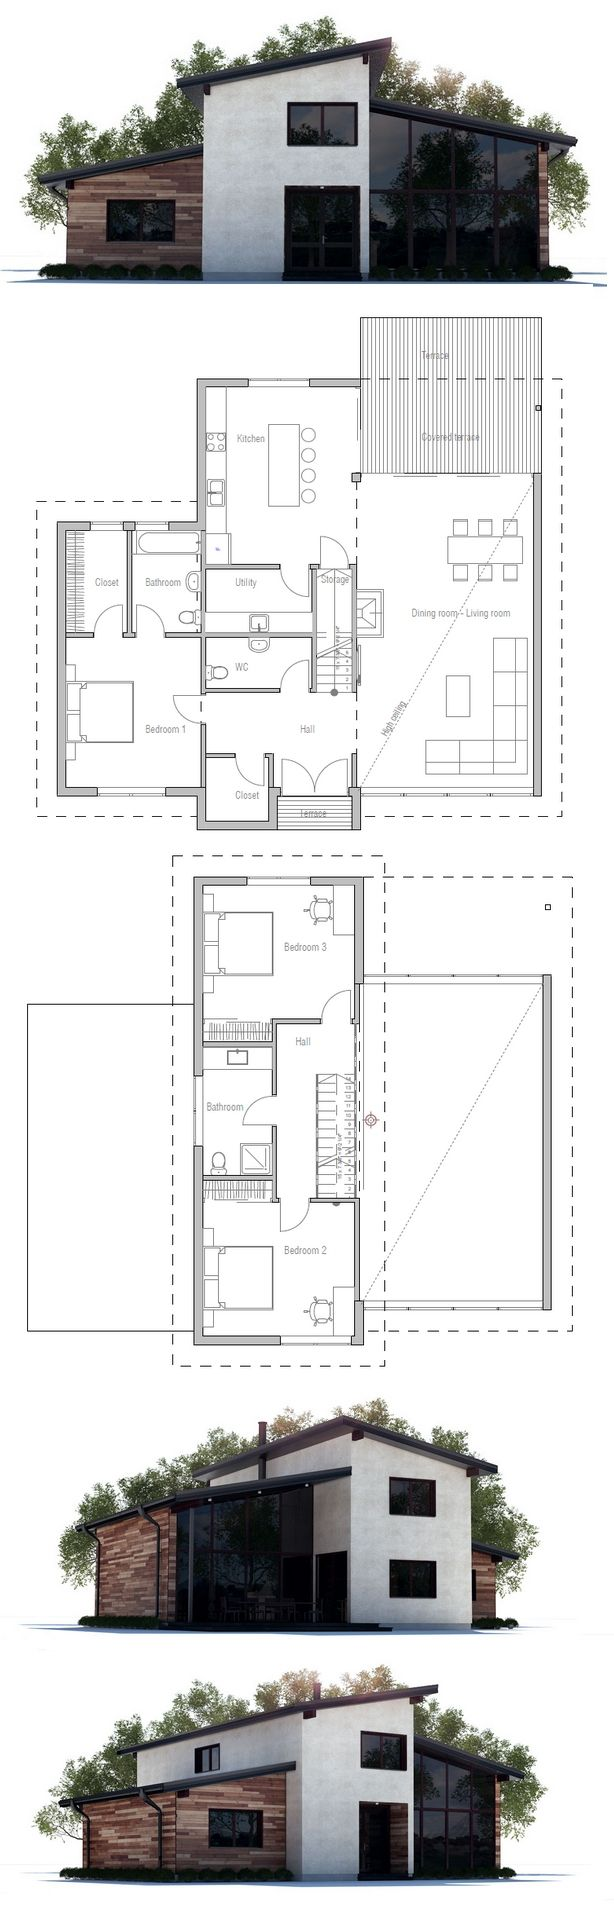 Modern House, House Plan from ConceptHome.com